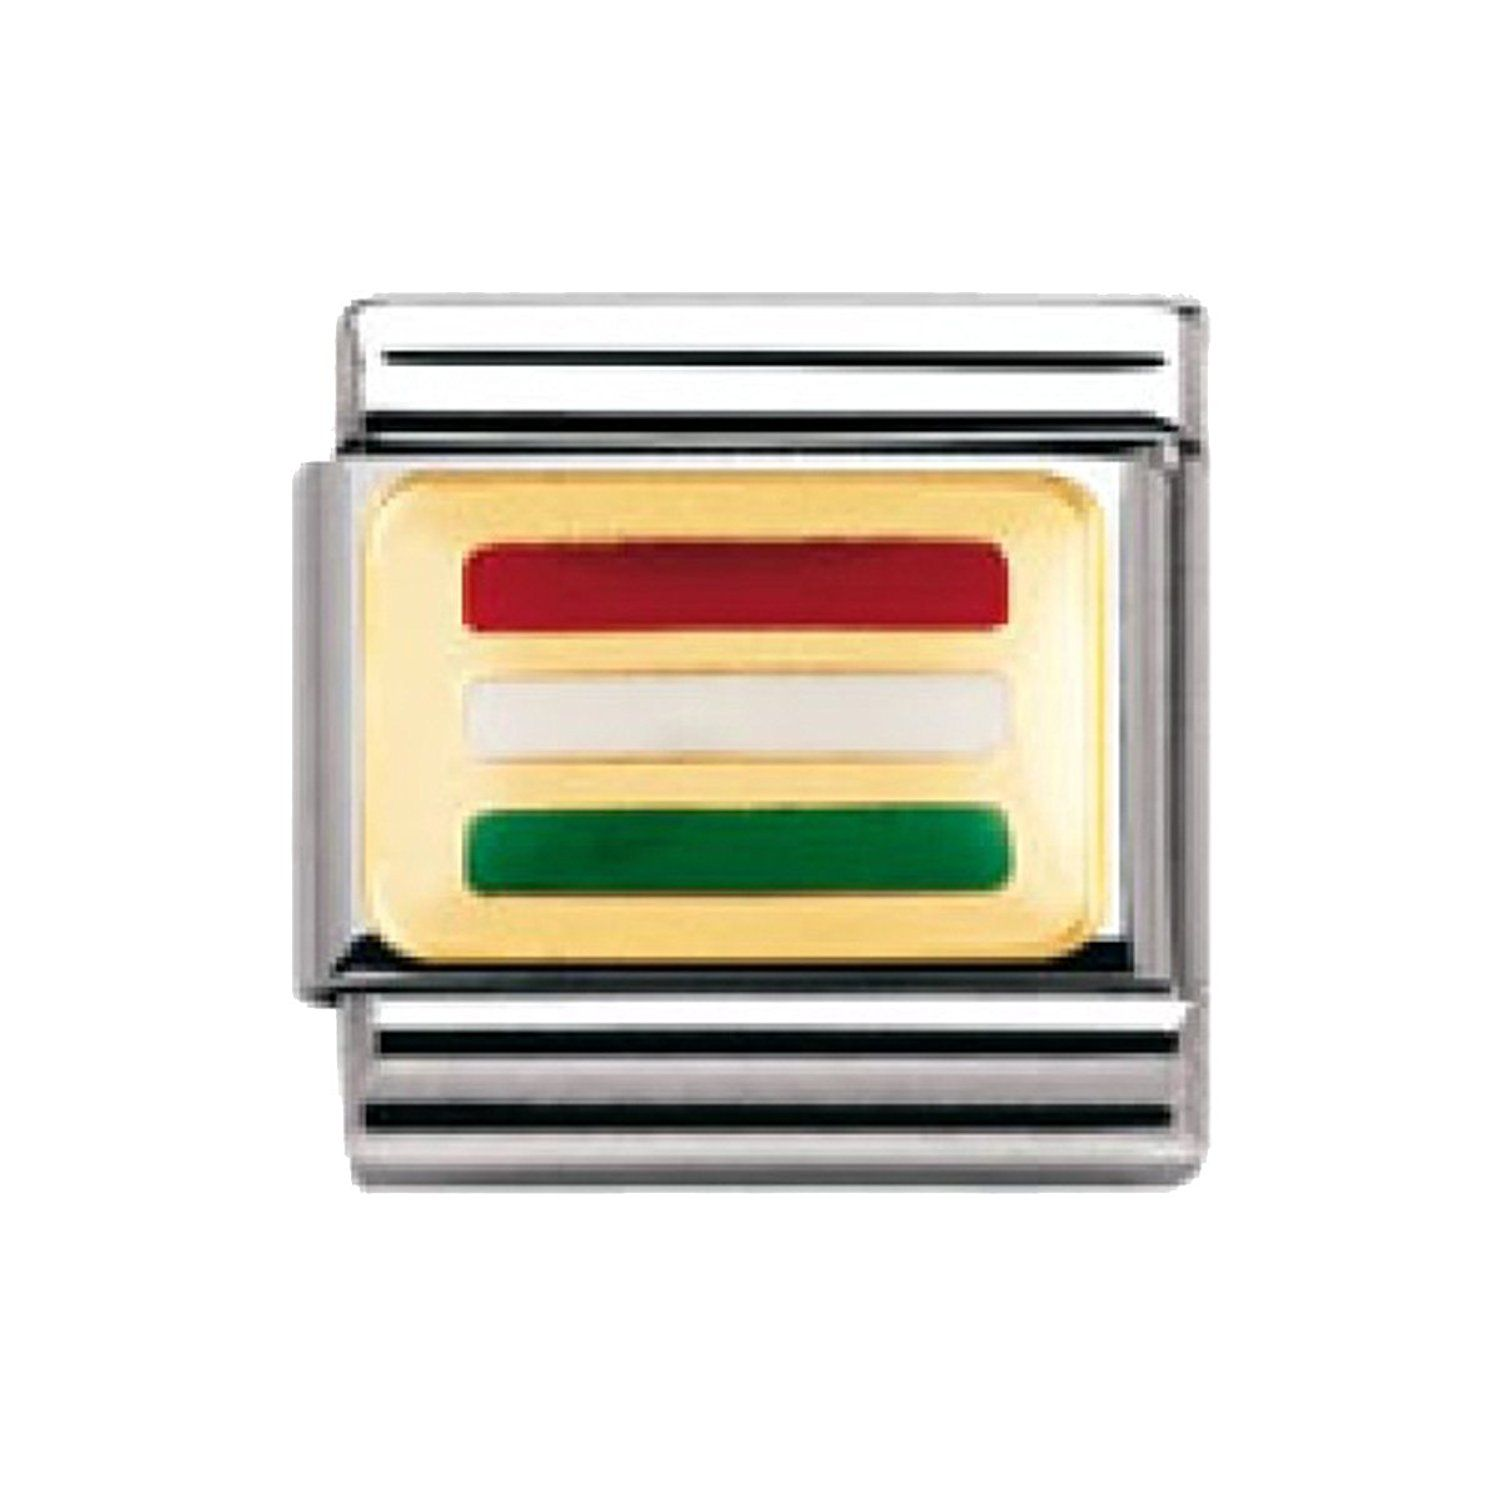 Nomination Composable Classic Flags of Europe Iceland Stainless Steel, Enamel and 18K Gold